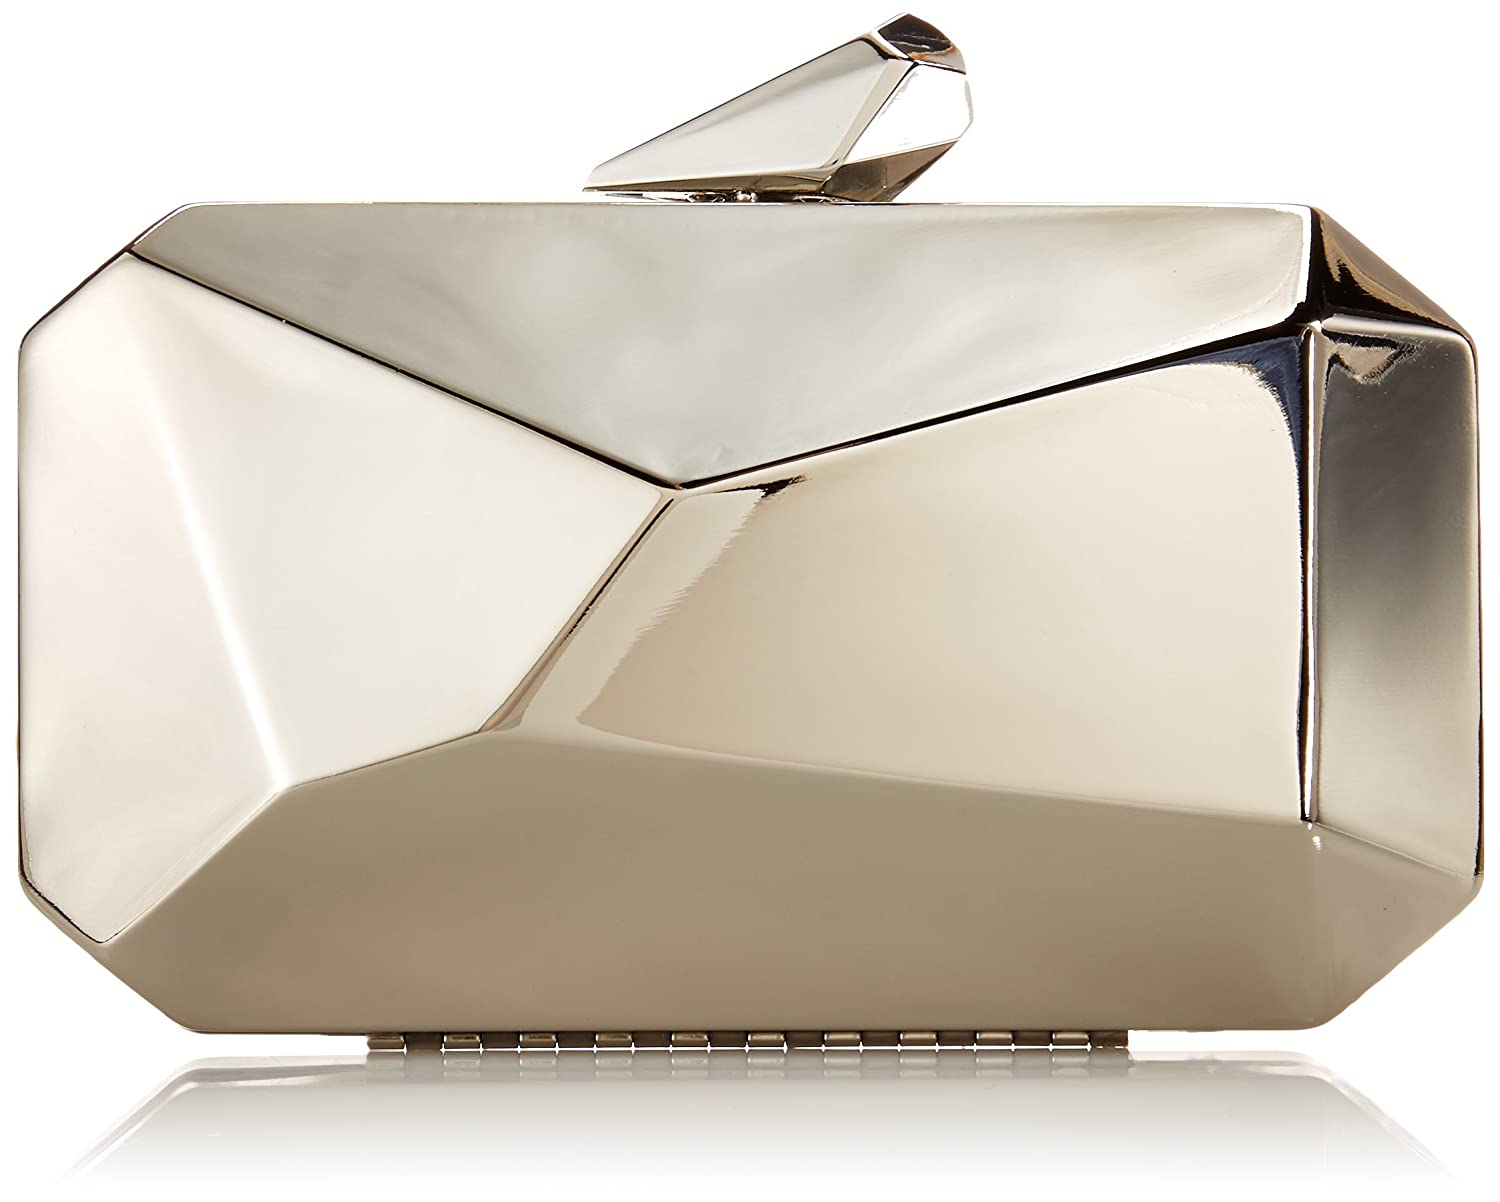 Image result for An abstract alloy metal clutch